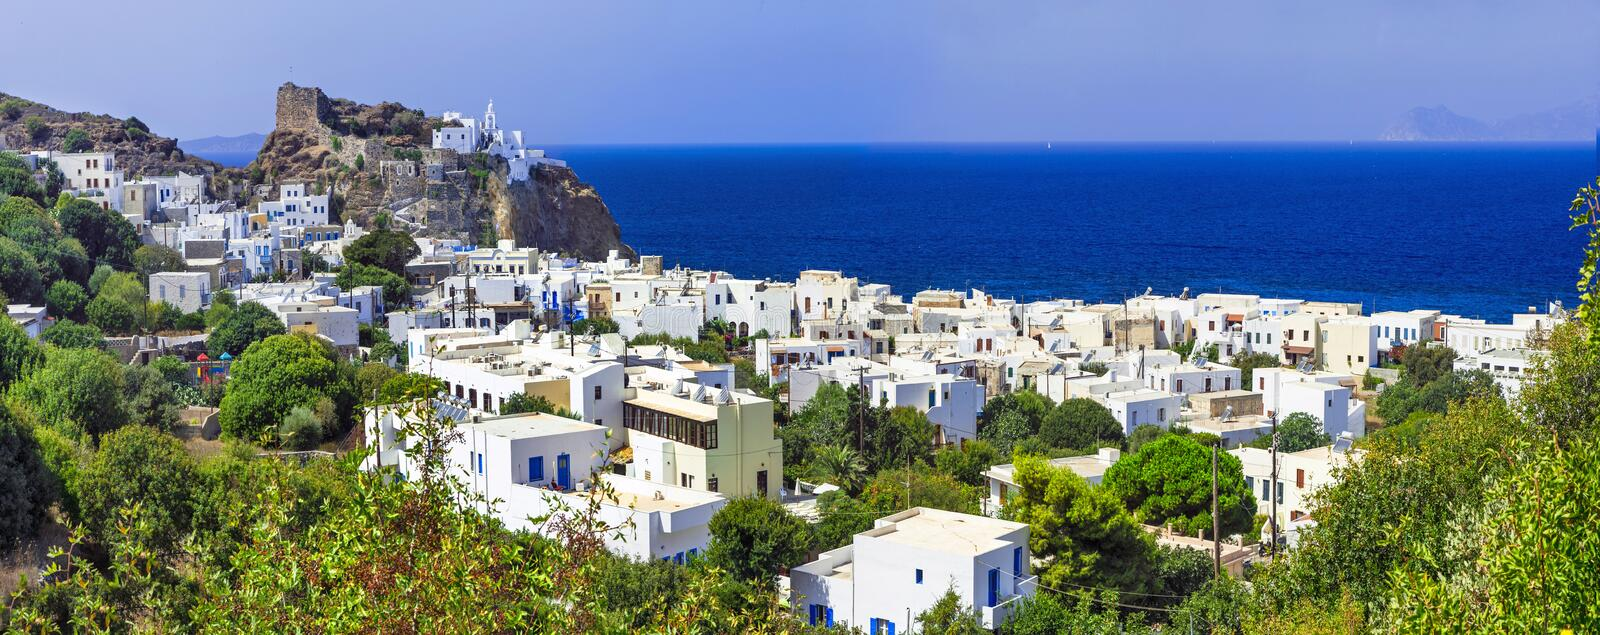 Beautiful Greek islands - Nisyros (Dodecanese) stock photo